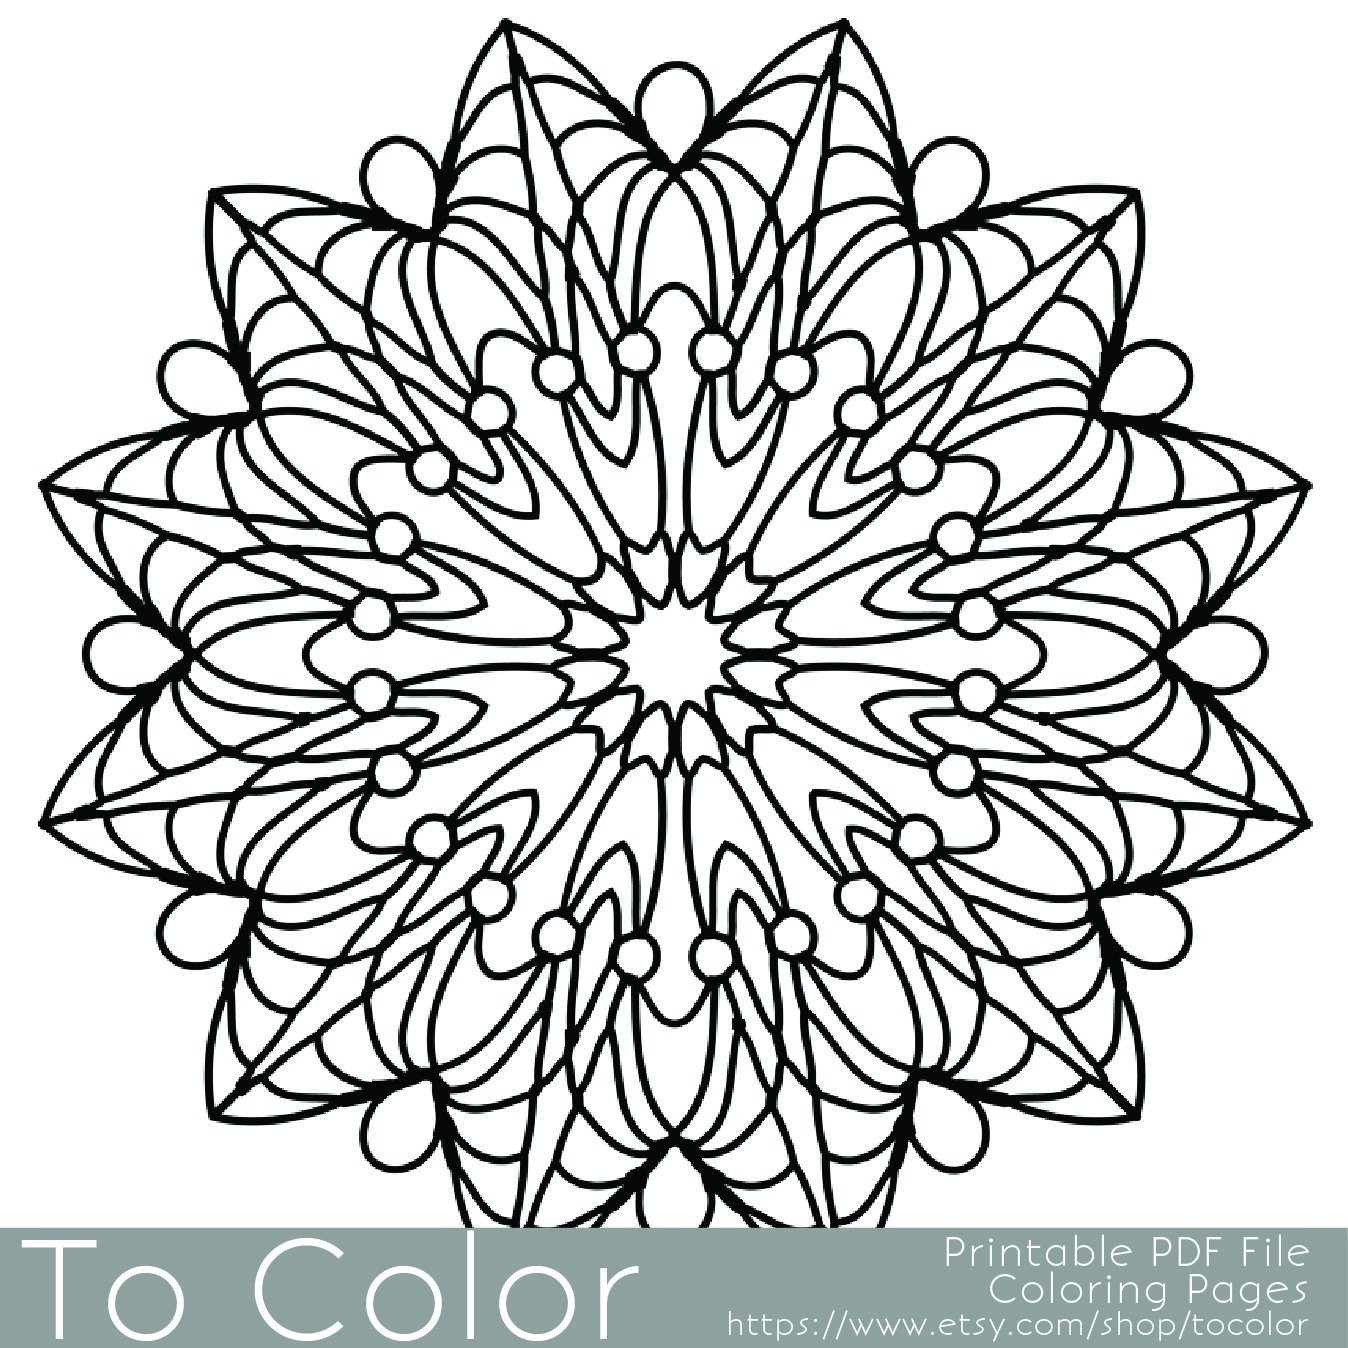 Simple Adult Coloring Pages  Simple Printable Coloring Pages for Adults Gel Pens Mandala